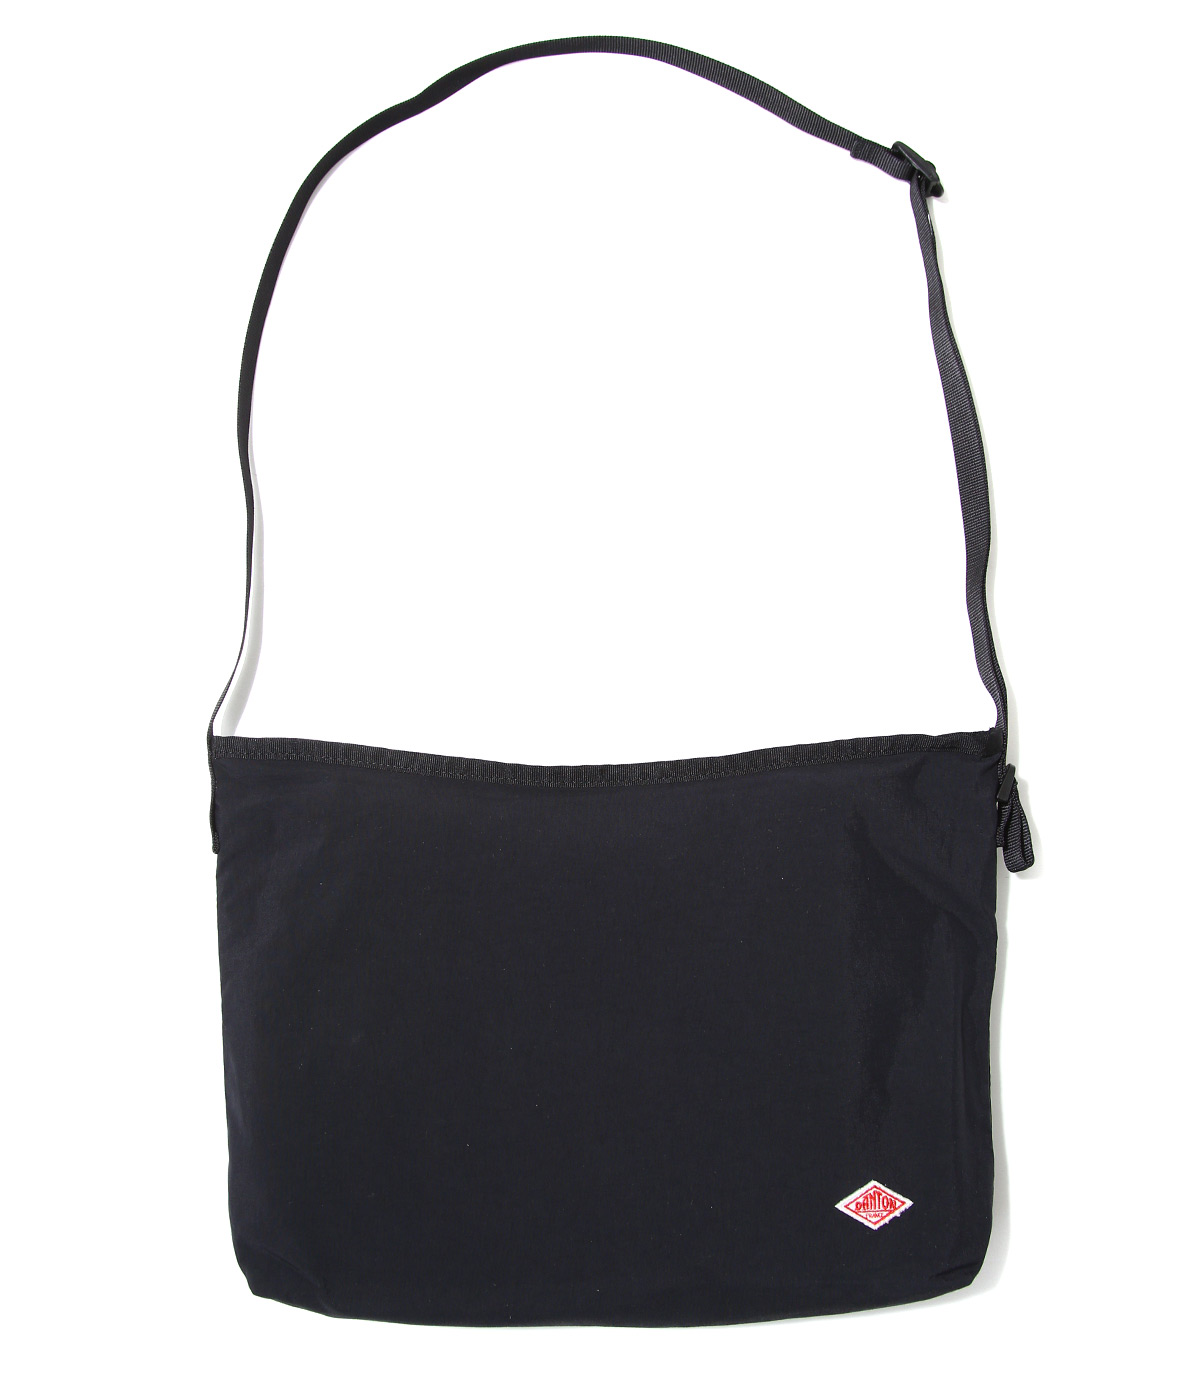 NYLON TAFFETA SHOULDER BAG